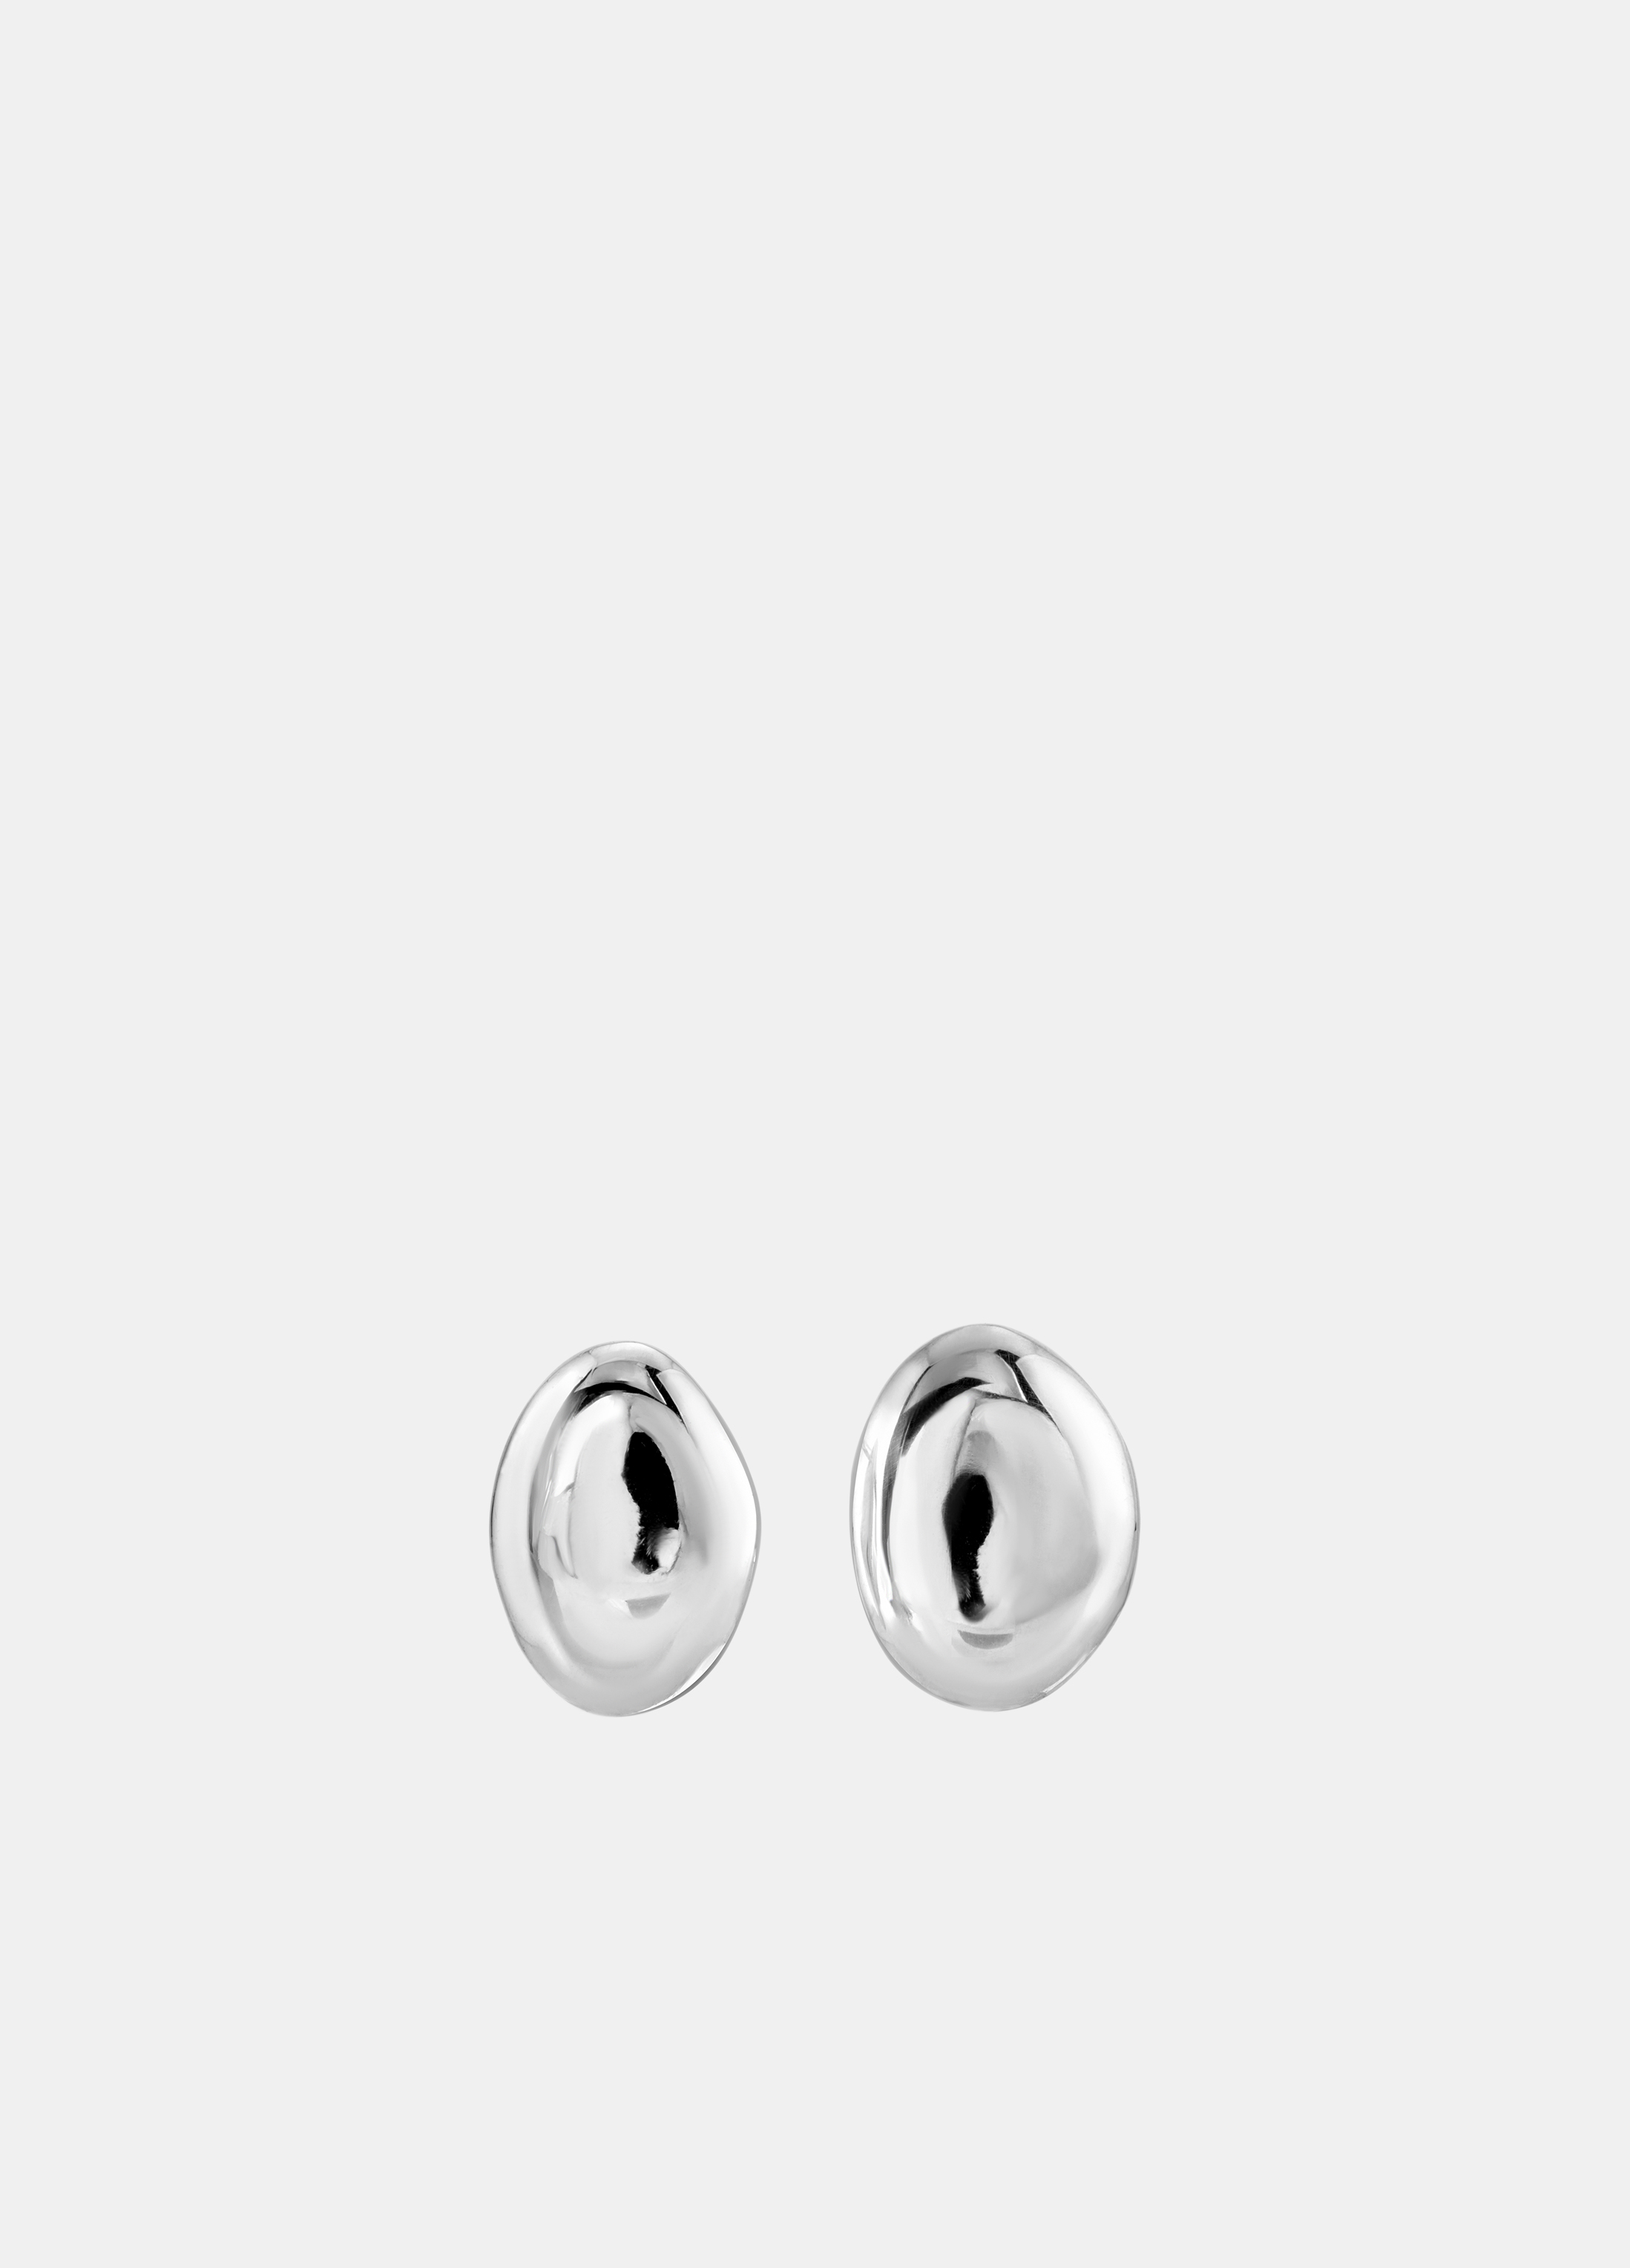 Modern Weaving / Hand Formed Oval Dome Studs